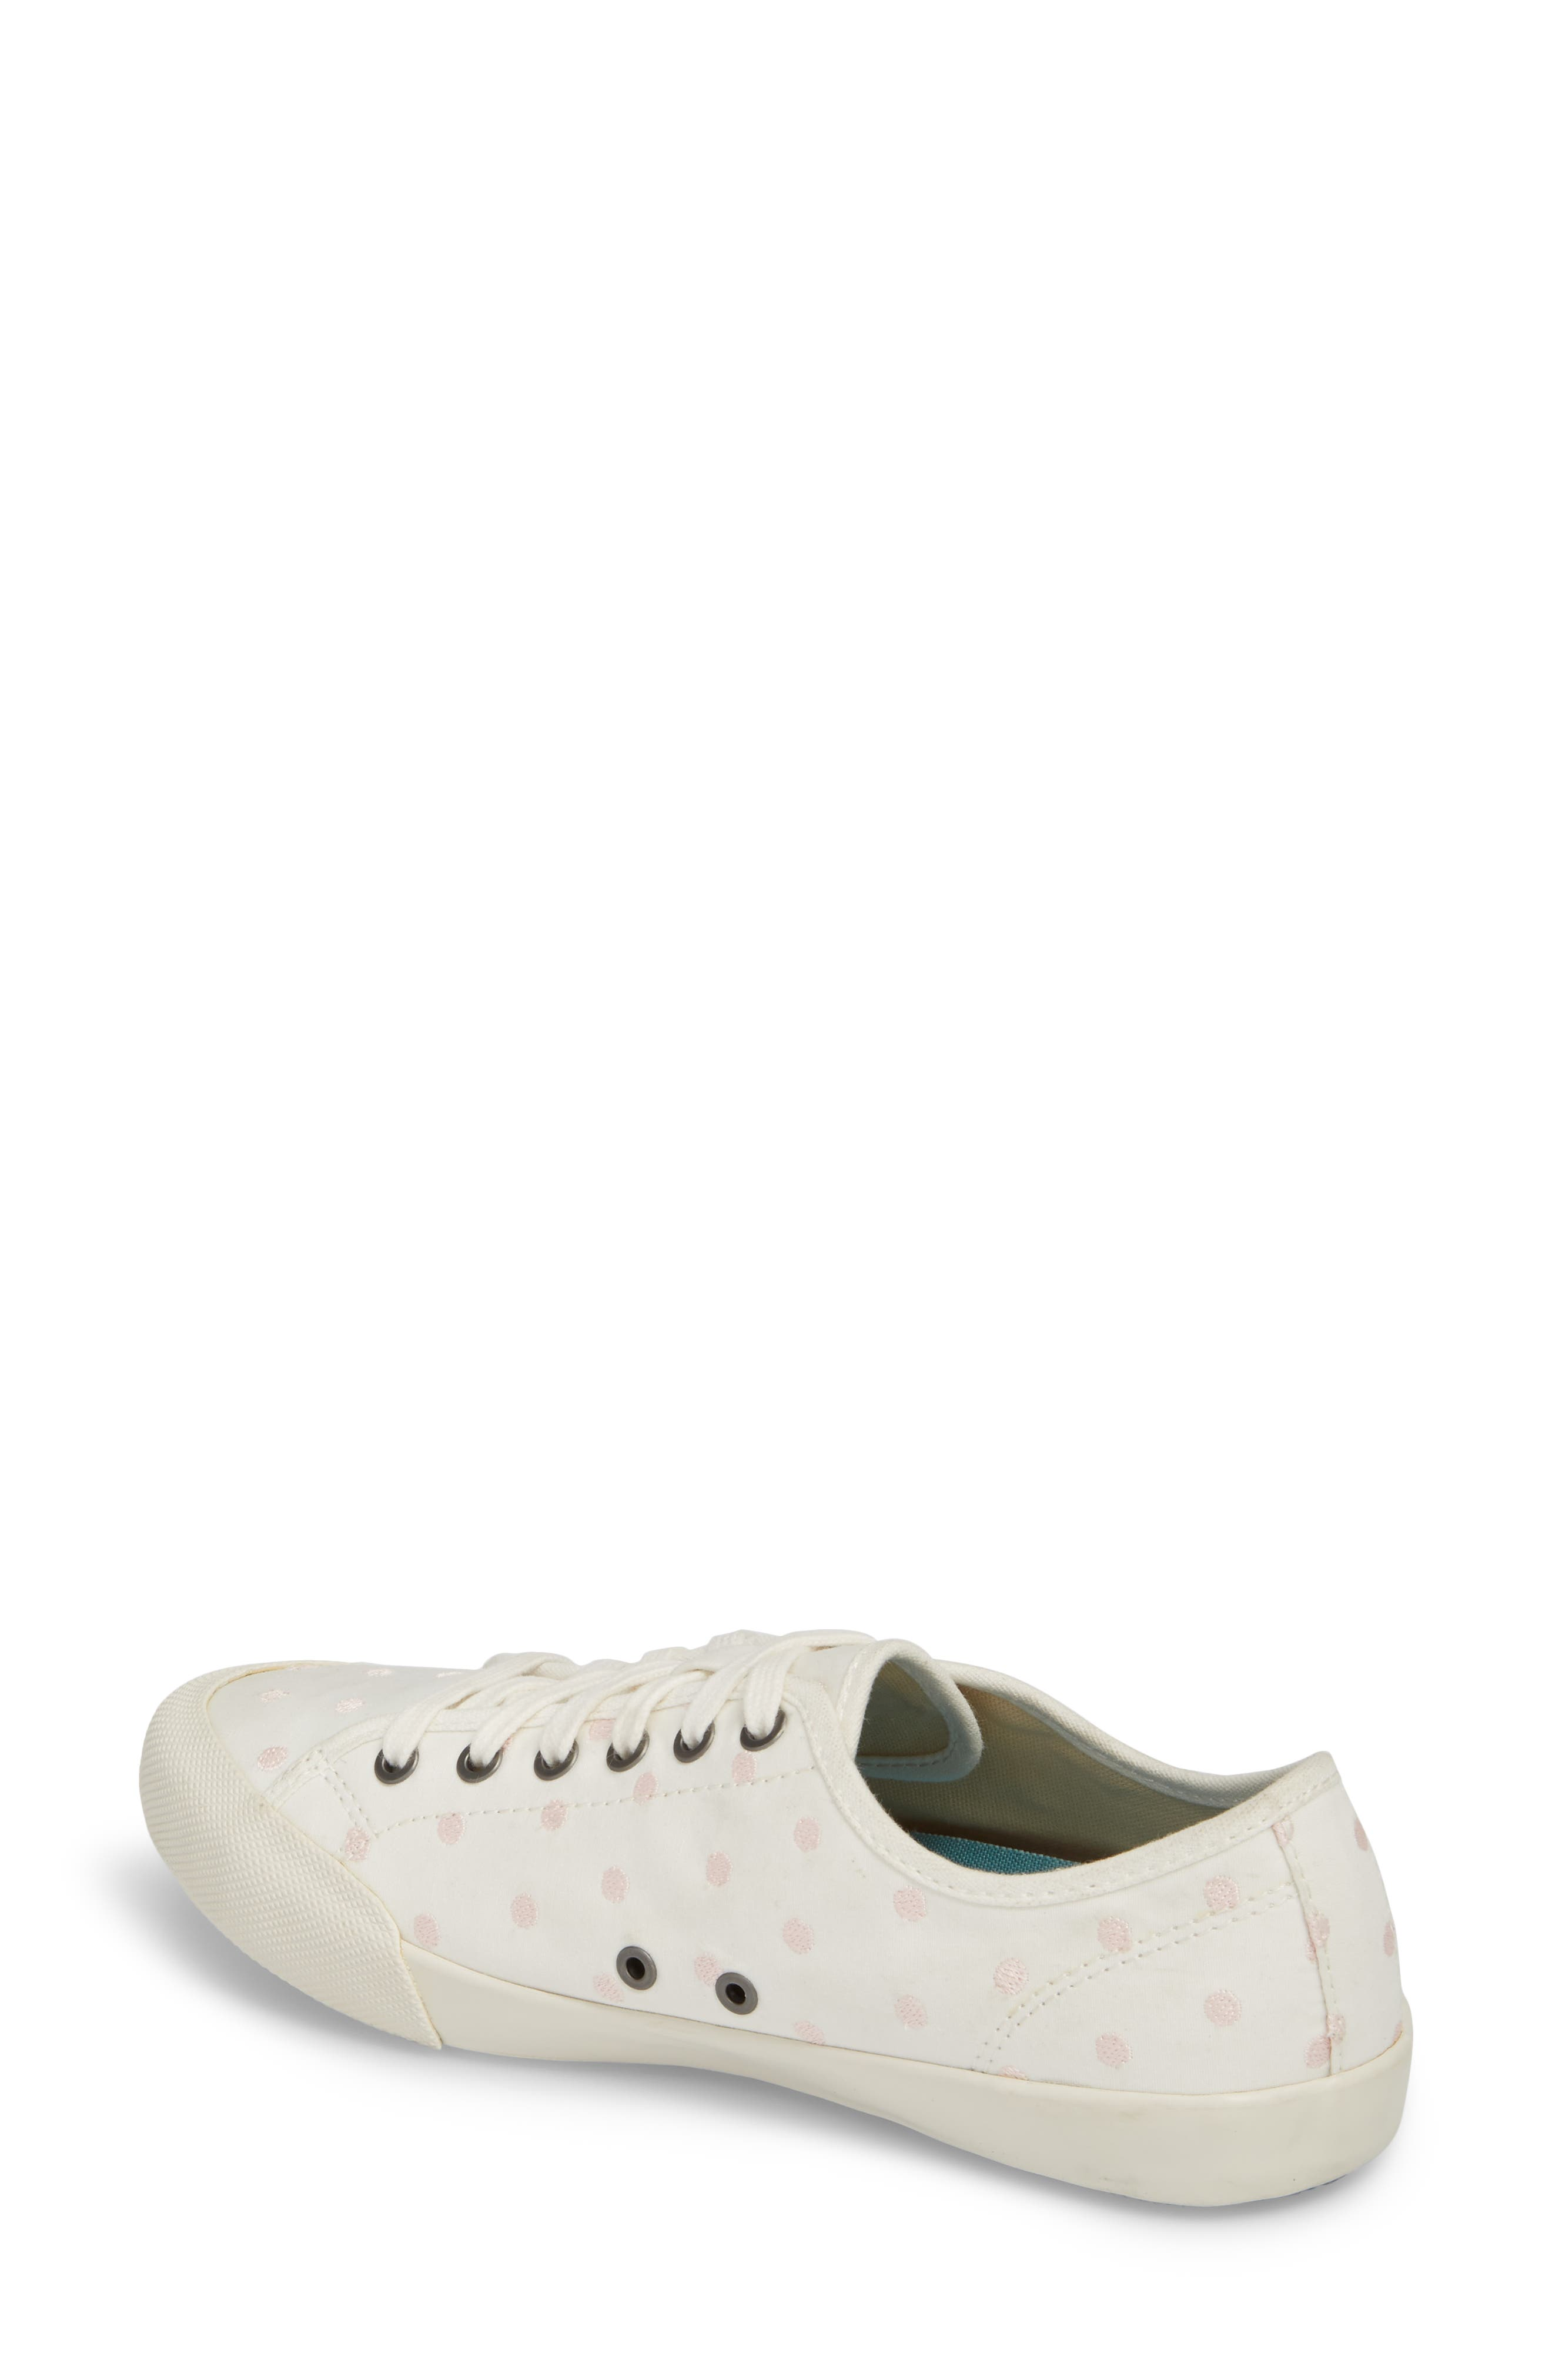 Monterey Embroidered Low Top Sneaker,                             Alternate thumbnail 2, color,                             PEARL